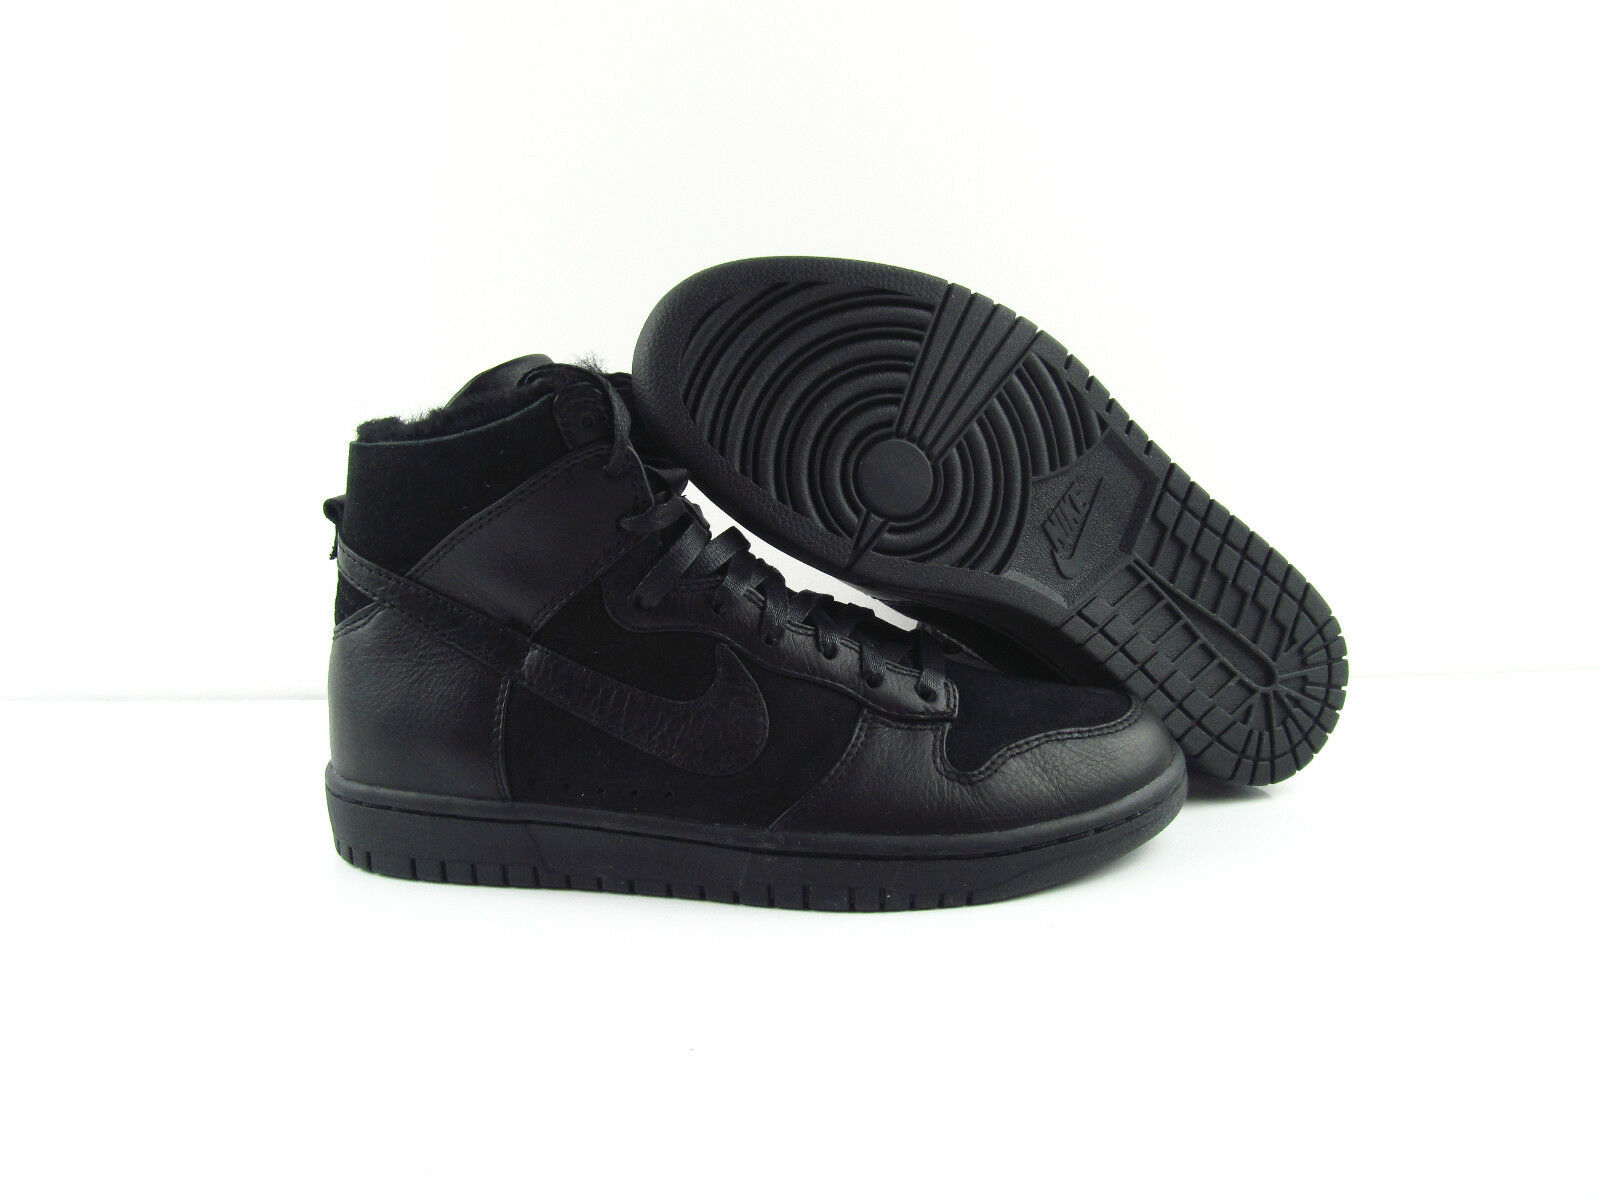 Nike Dunk Lux SP Sherpa Sherpa Sherpa ALL noir Nikelab Leather New US_9  Eur 42.5 a59732